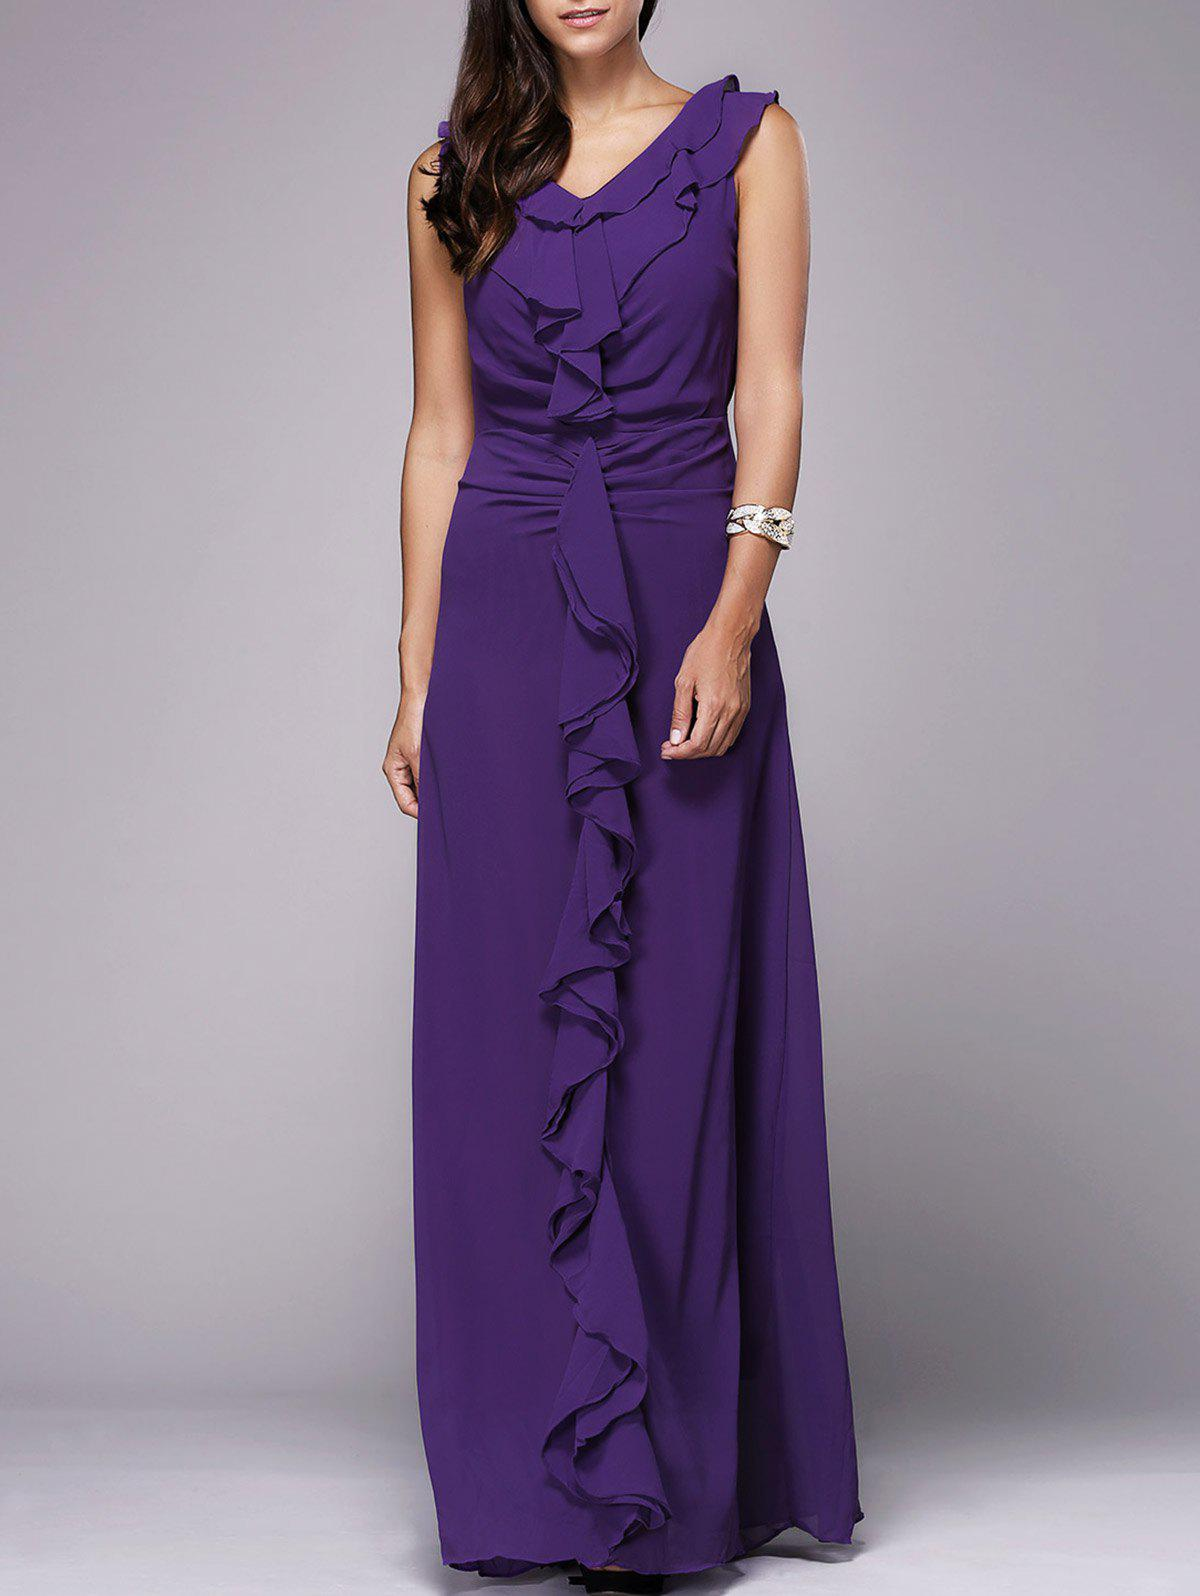 OL Style Women's V Neck Sleeveless Flounced Pure Color Maxi Dress - PURPLE XL